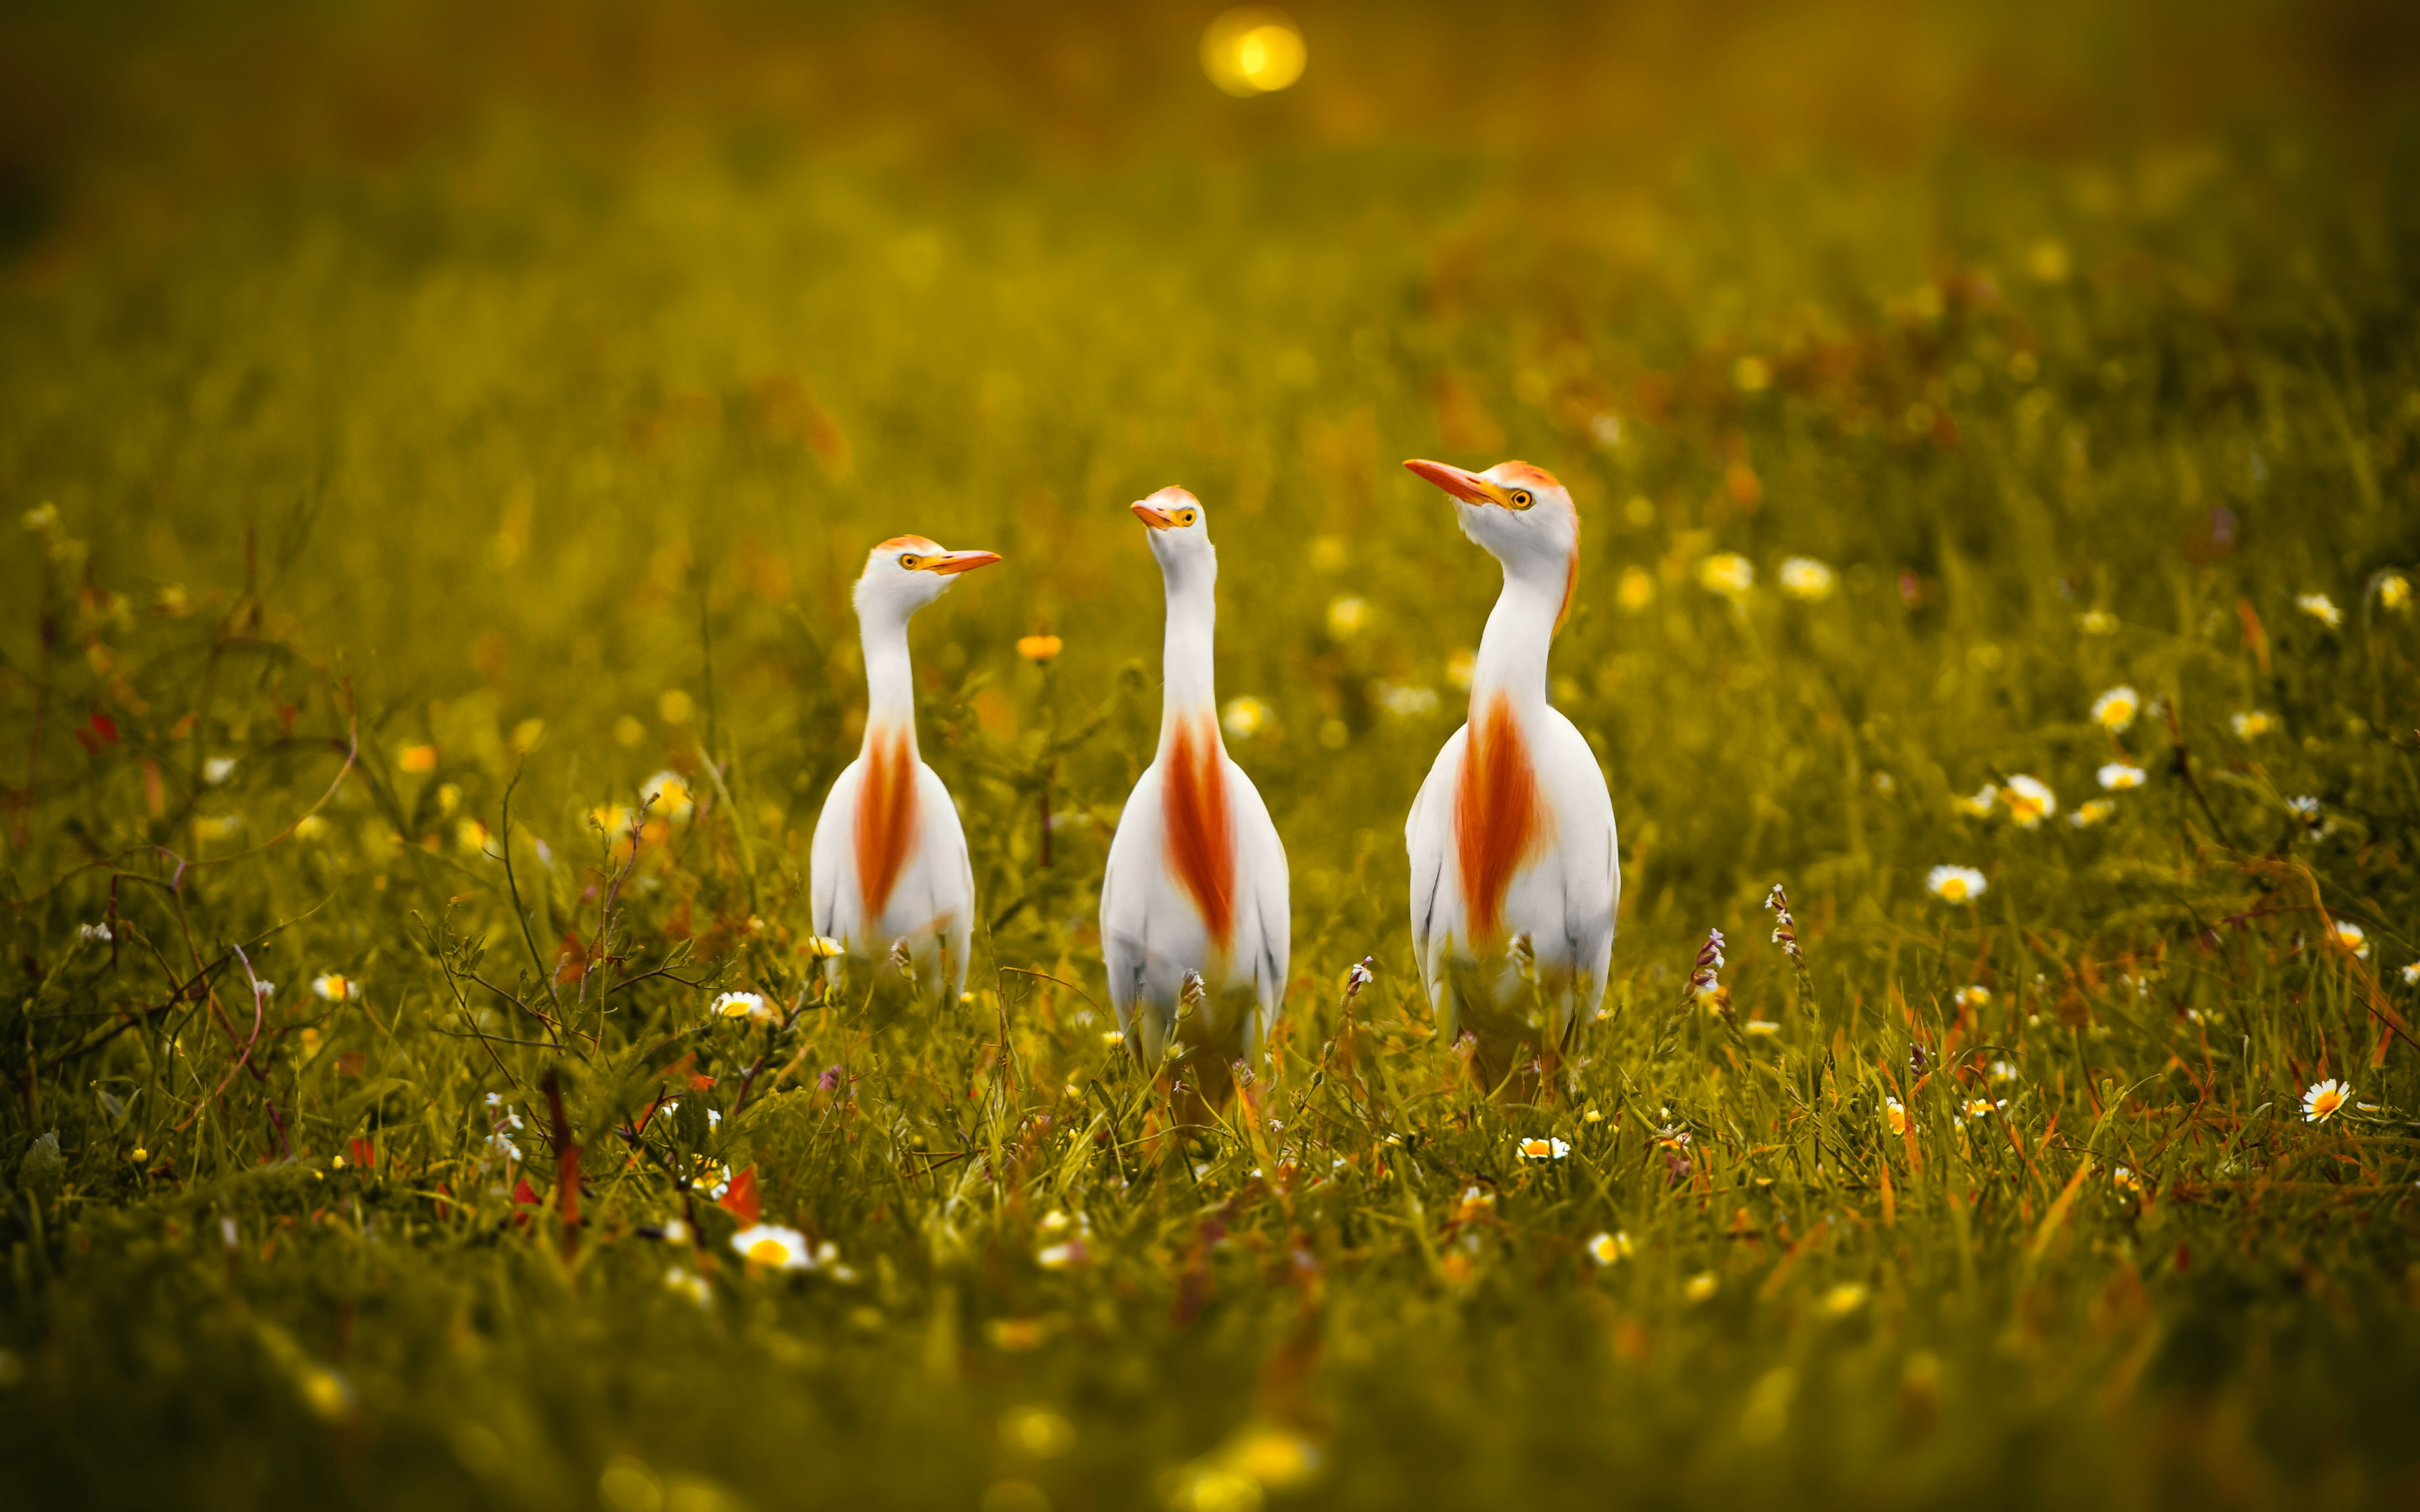 White and orange storks wallpaper 2880x1800